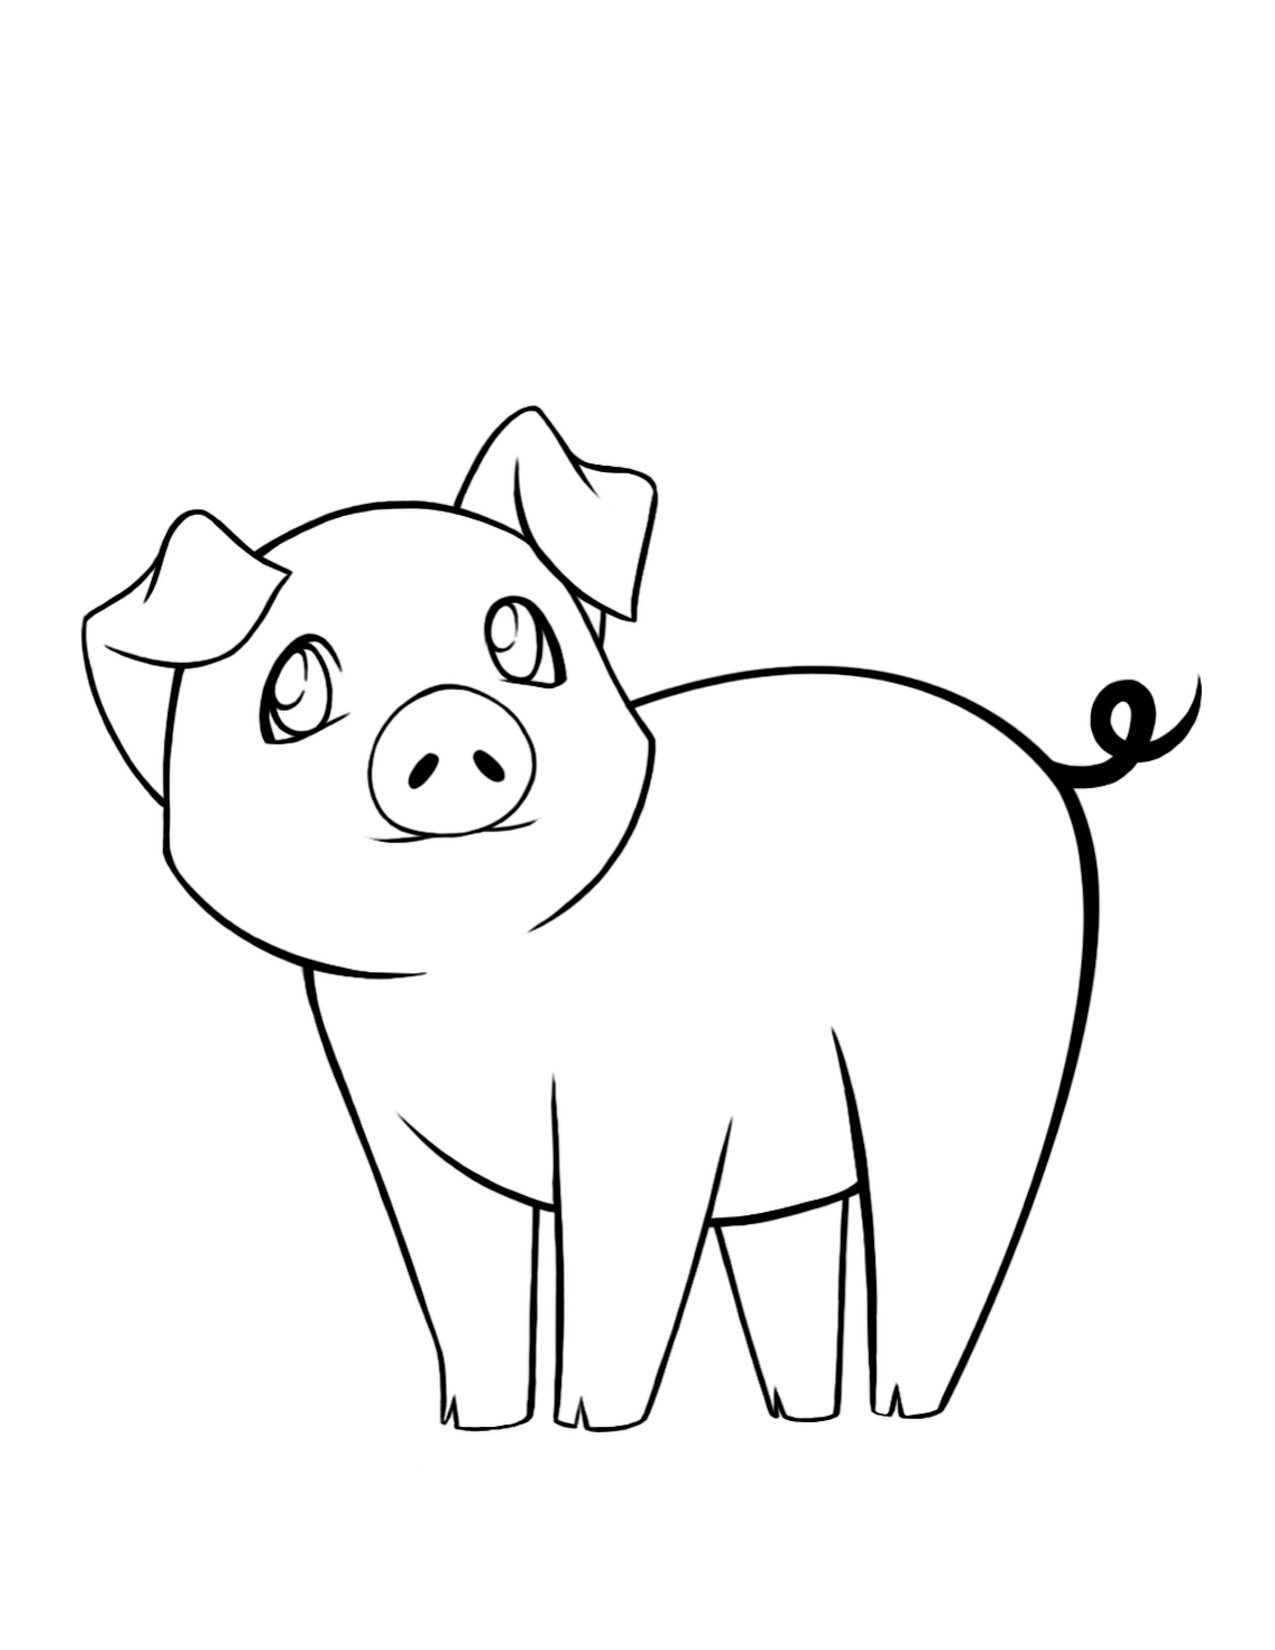 pig cartoon coloring the best wild hog coloring pages flower wallpaper pig coloring cartoon